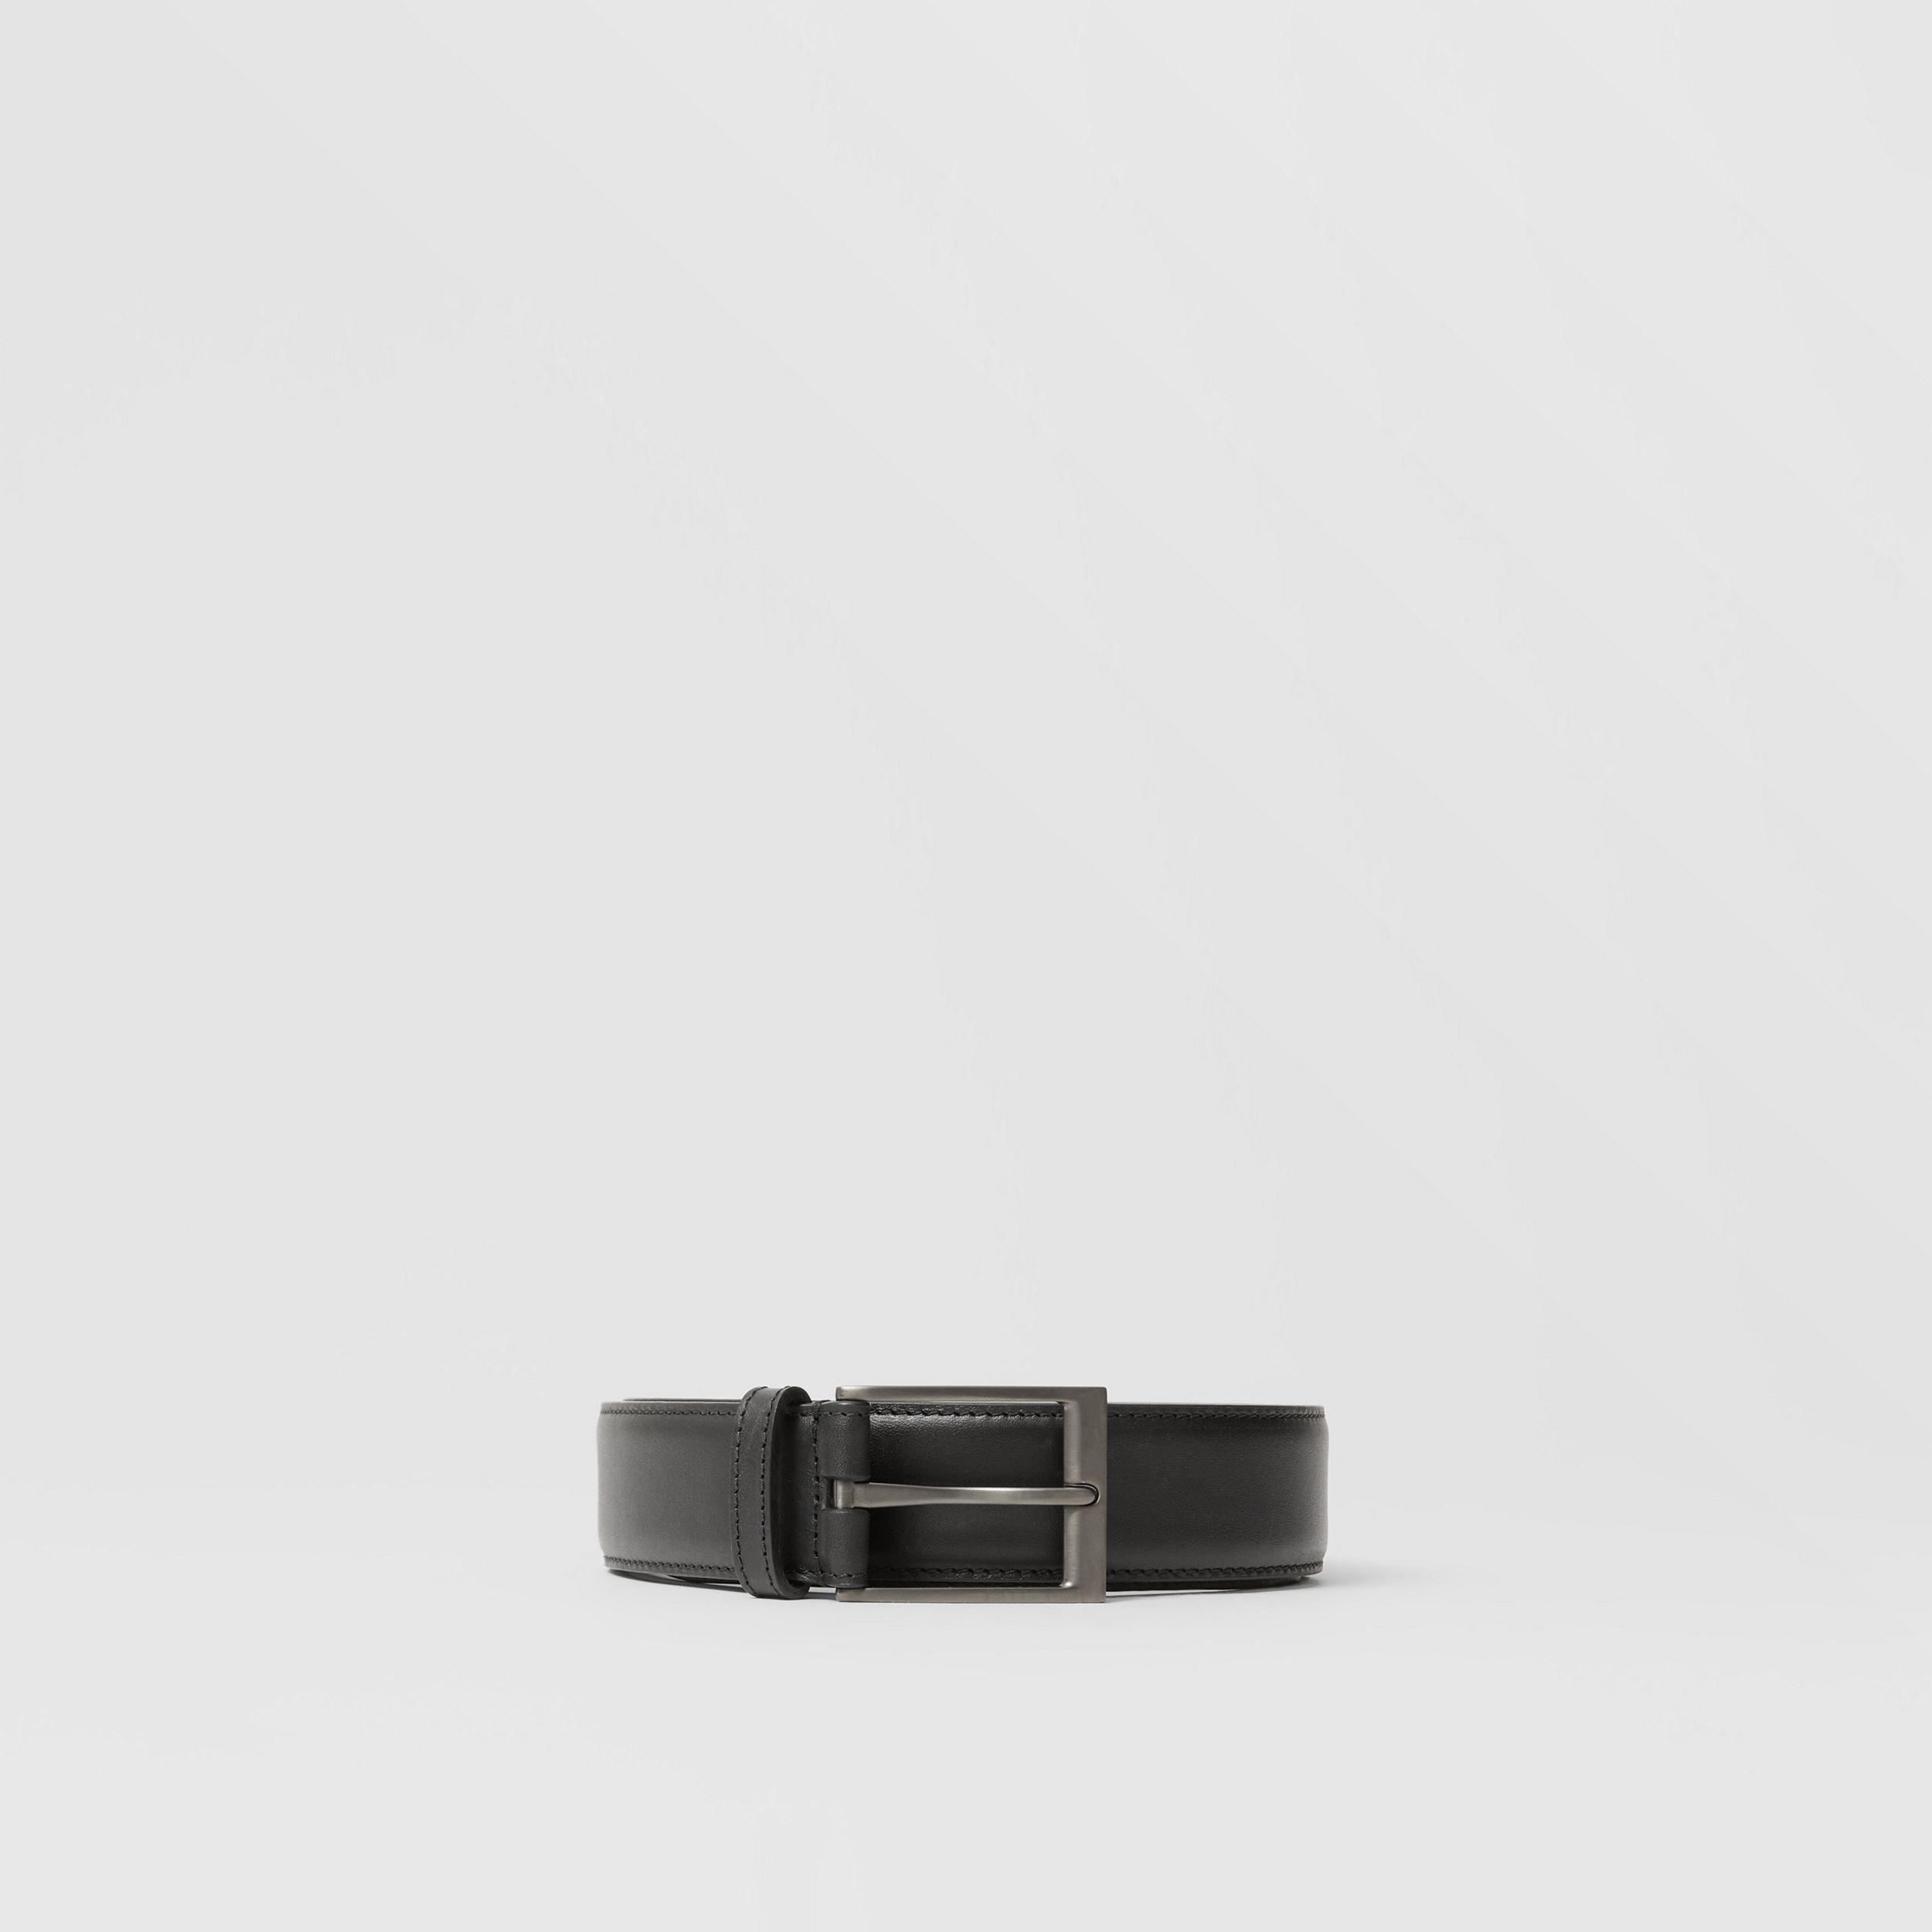 Leather Belt in Black - Men | Burberry Australia - 4